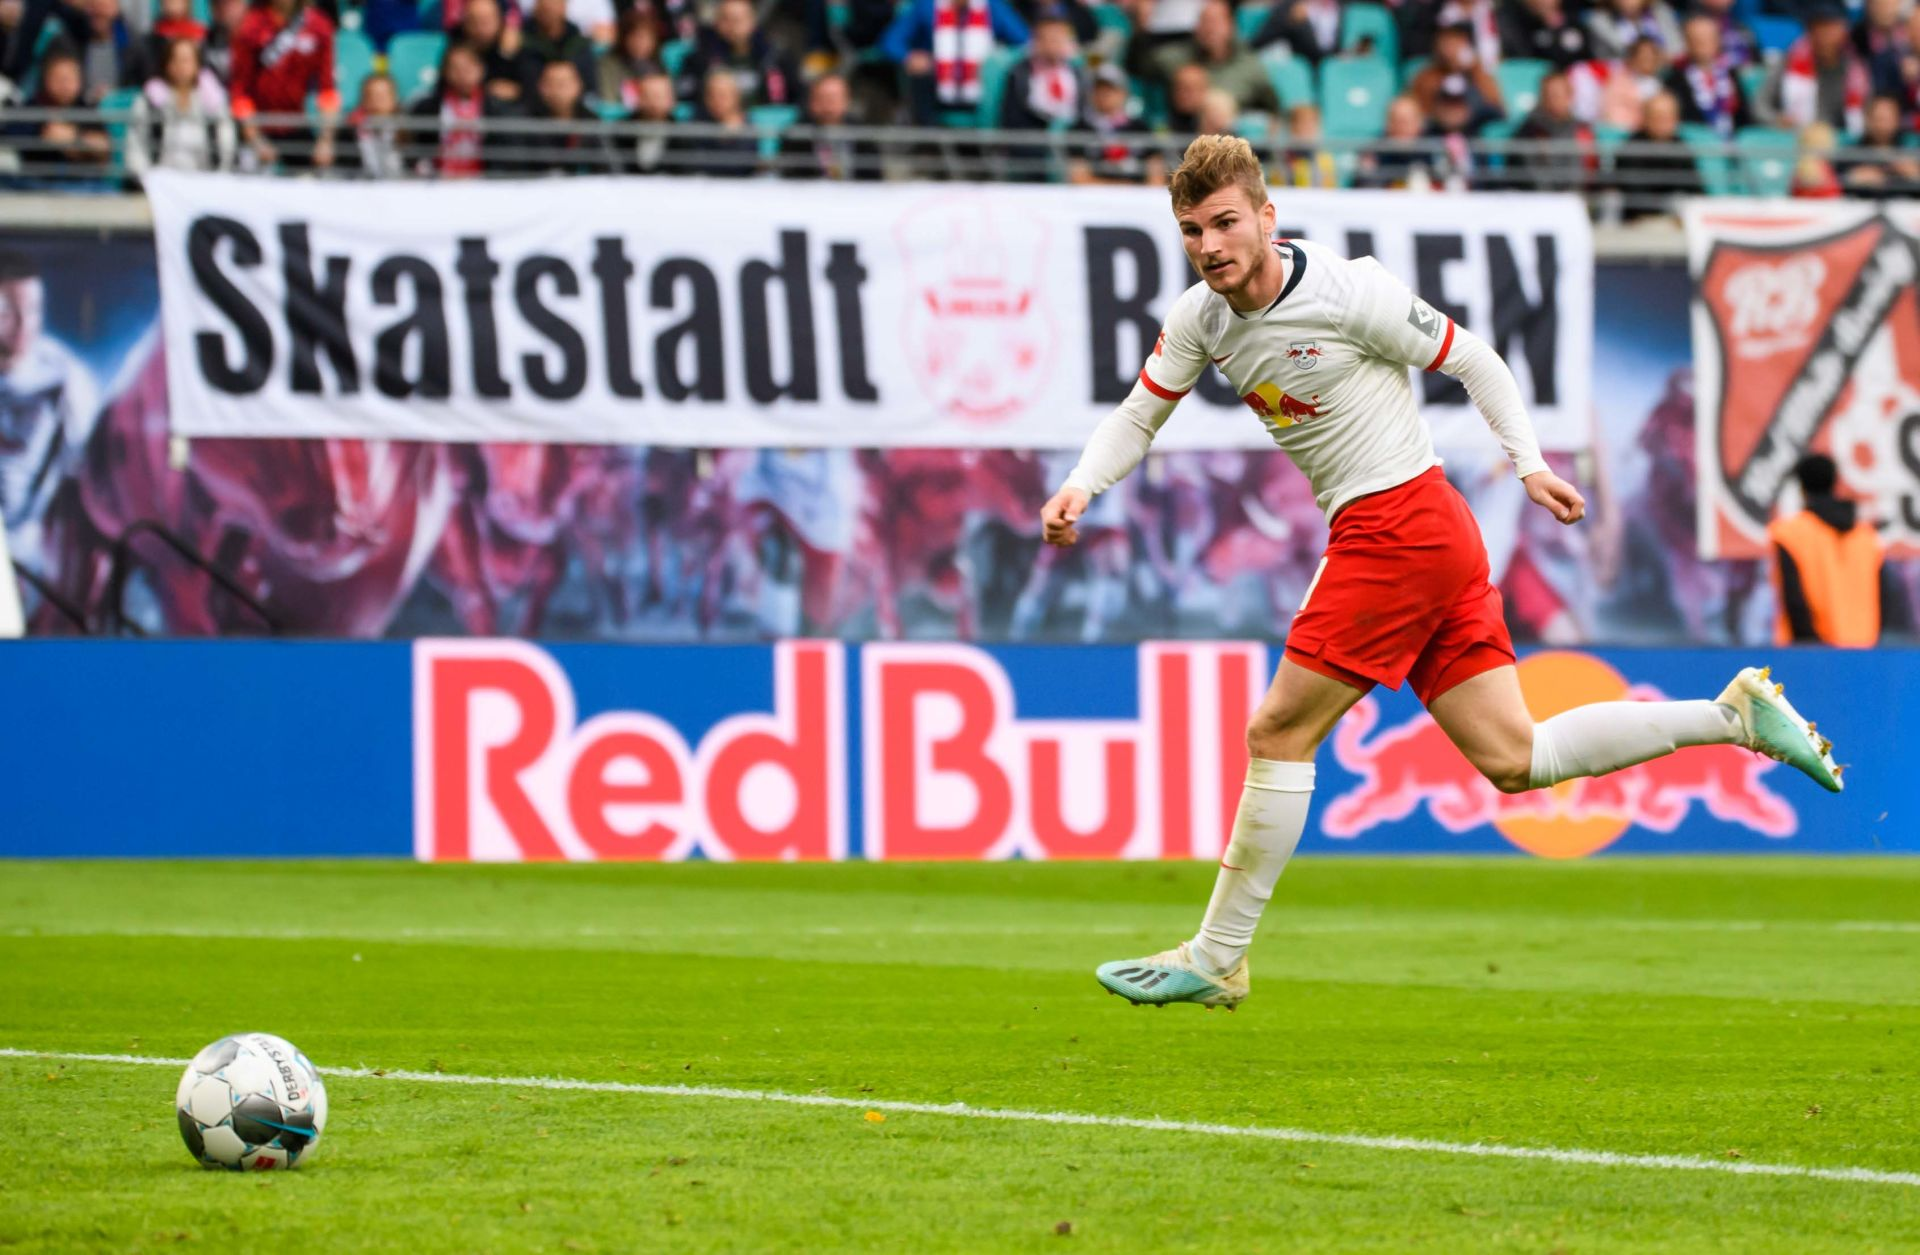 LEIPZIG, Oct. 20, 2019 Timo Werner of Leipzig takes a scoring shot during a 2019-2020 season German Bundesliga match between RB Leipzig and VfL Wolfsburg in Leipzig, Germany, Oct. 19, 2019. (Photo by Kevin Voigt/Xinhua) (Credit Image: © Kevin Voigt/Xinhua via ZUMA Wire) PILKA NOZNA SEZON 2019/2020 LIGA NIEMIECKA FOT. ZUMA/NEWSPIX.PL POLAND ONLY! --- Newspix.pl *** Local Caption *** www.newspix.pl mail us: info@newspix.pl call us: 0048 022 23 22 222 --- Polish Picture Agency by Ringier Axel Springer Poland